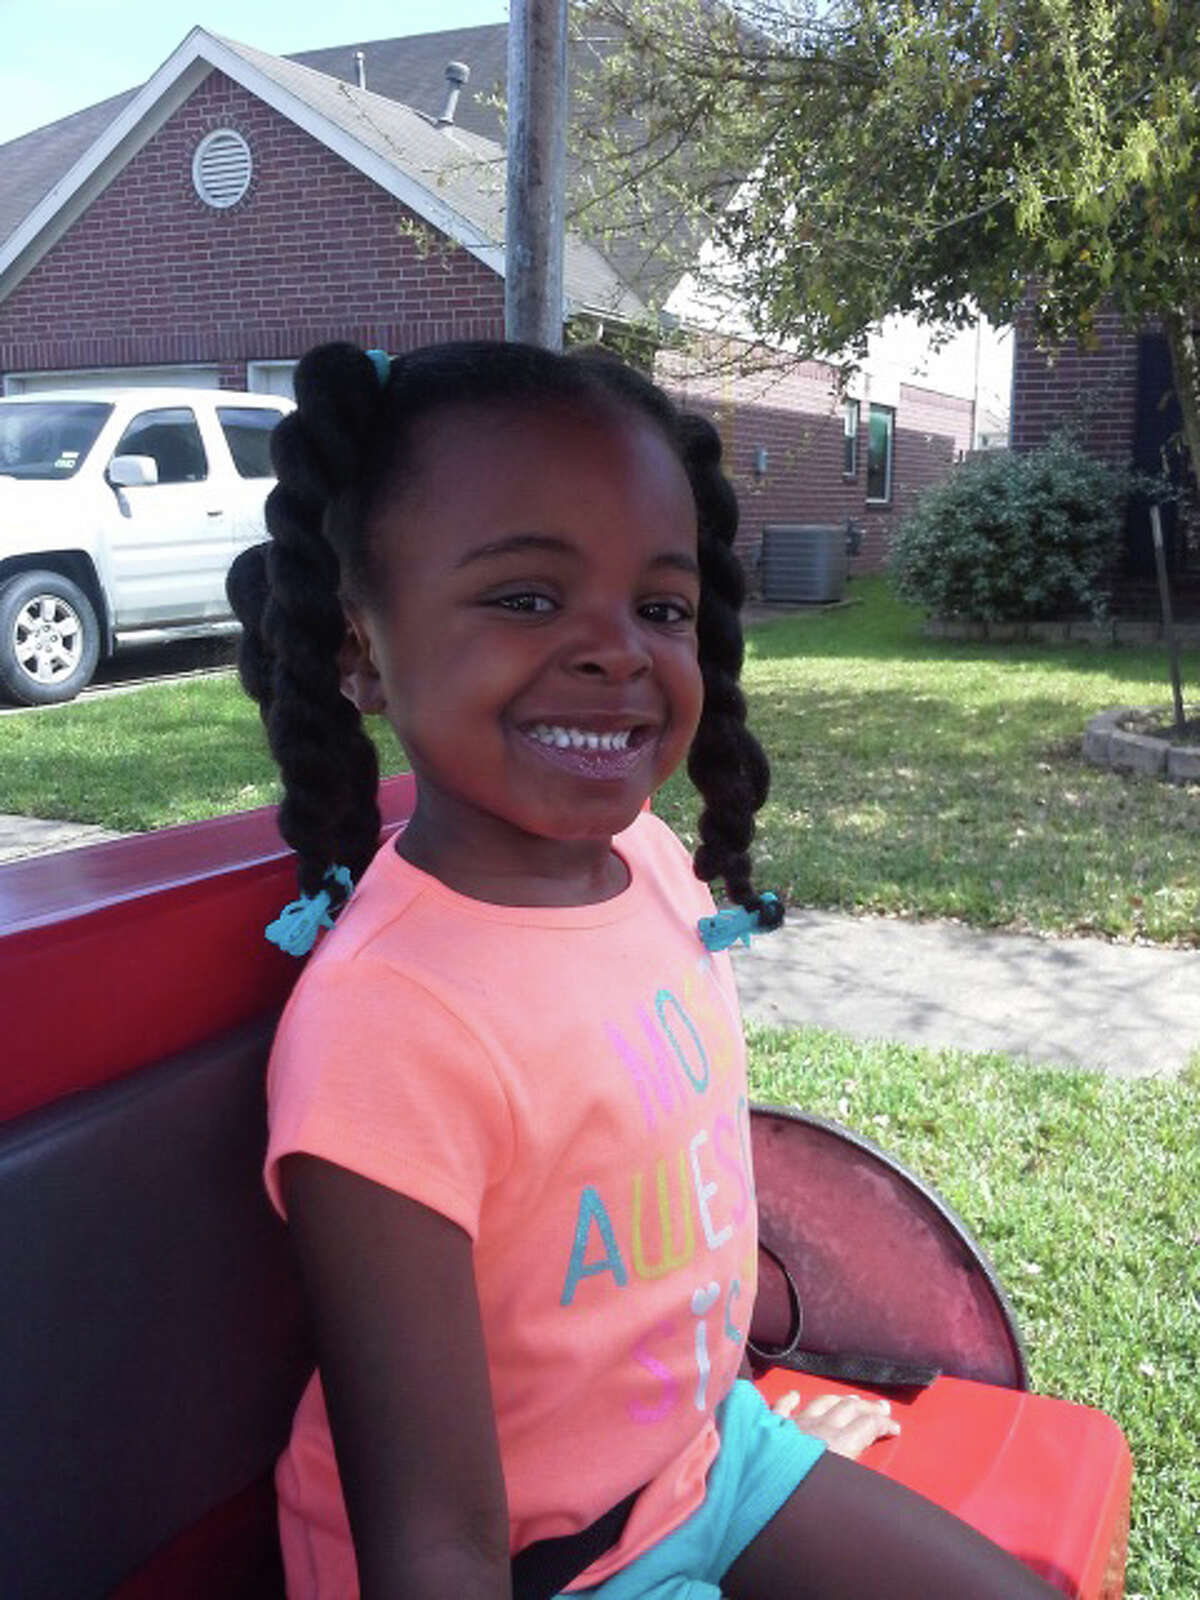 DeÂ?'Maree Adkins, 8-year old, was shot to death after car crash. Adkins and her mom, Latoyia Thomas were driving near the intersection of the Sam Houston Parkway feeder and Fuqua Street, when a speeding car hit their vehicle. The driver from the other vehicle jumped into another car and then started to shooting at ThomasÂ?' vehicle.